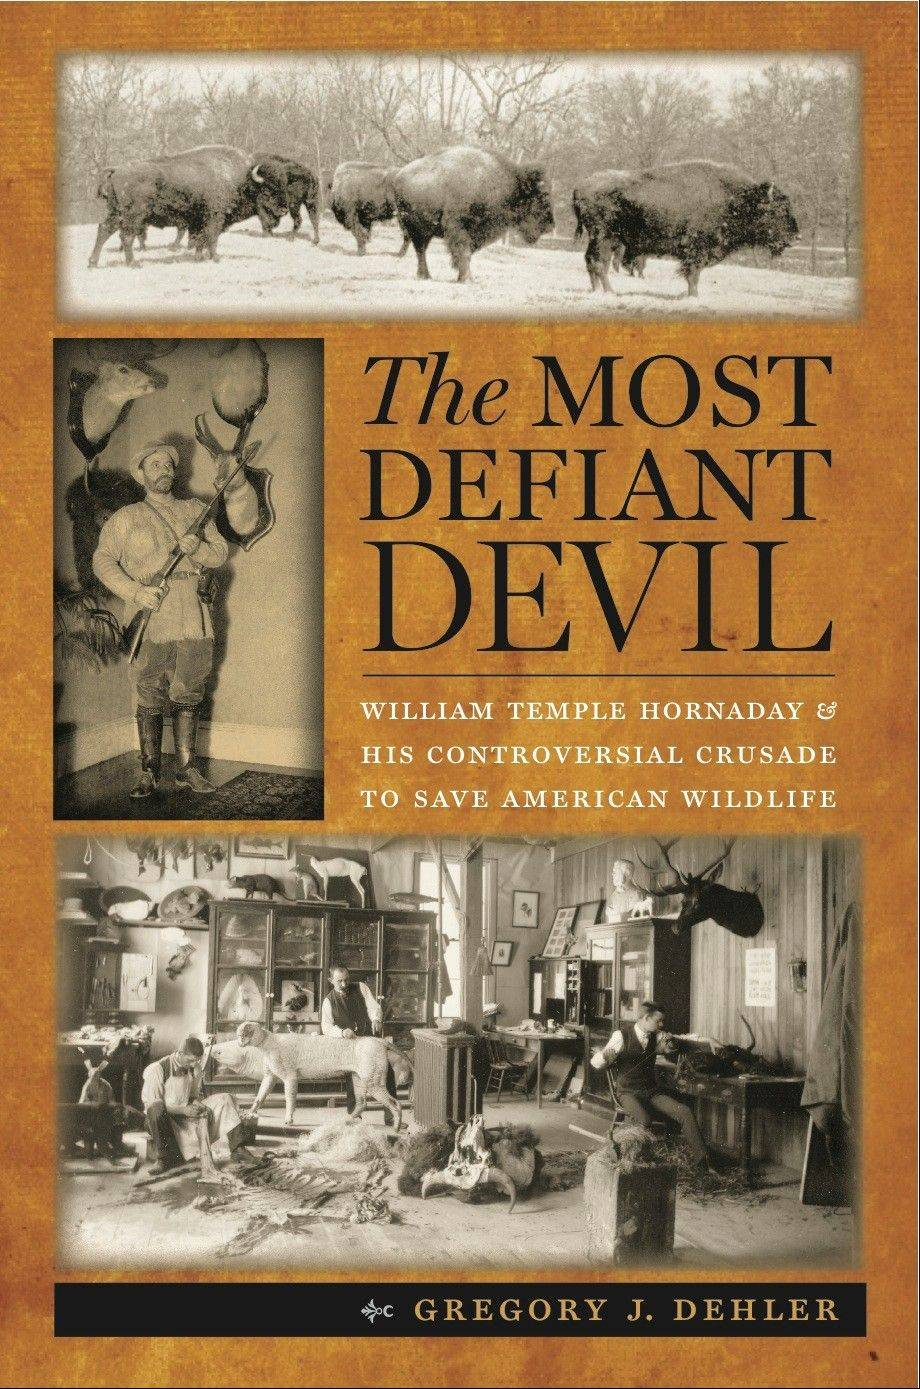 """The Most Defiant Devil: William Temple Hornaday and His Controversial Crusade to Save American Wildlife"" by Gregory J. Dehler"